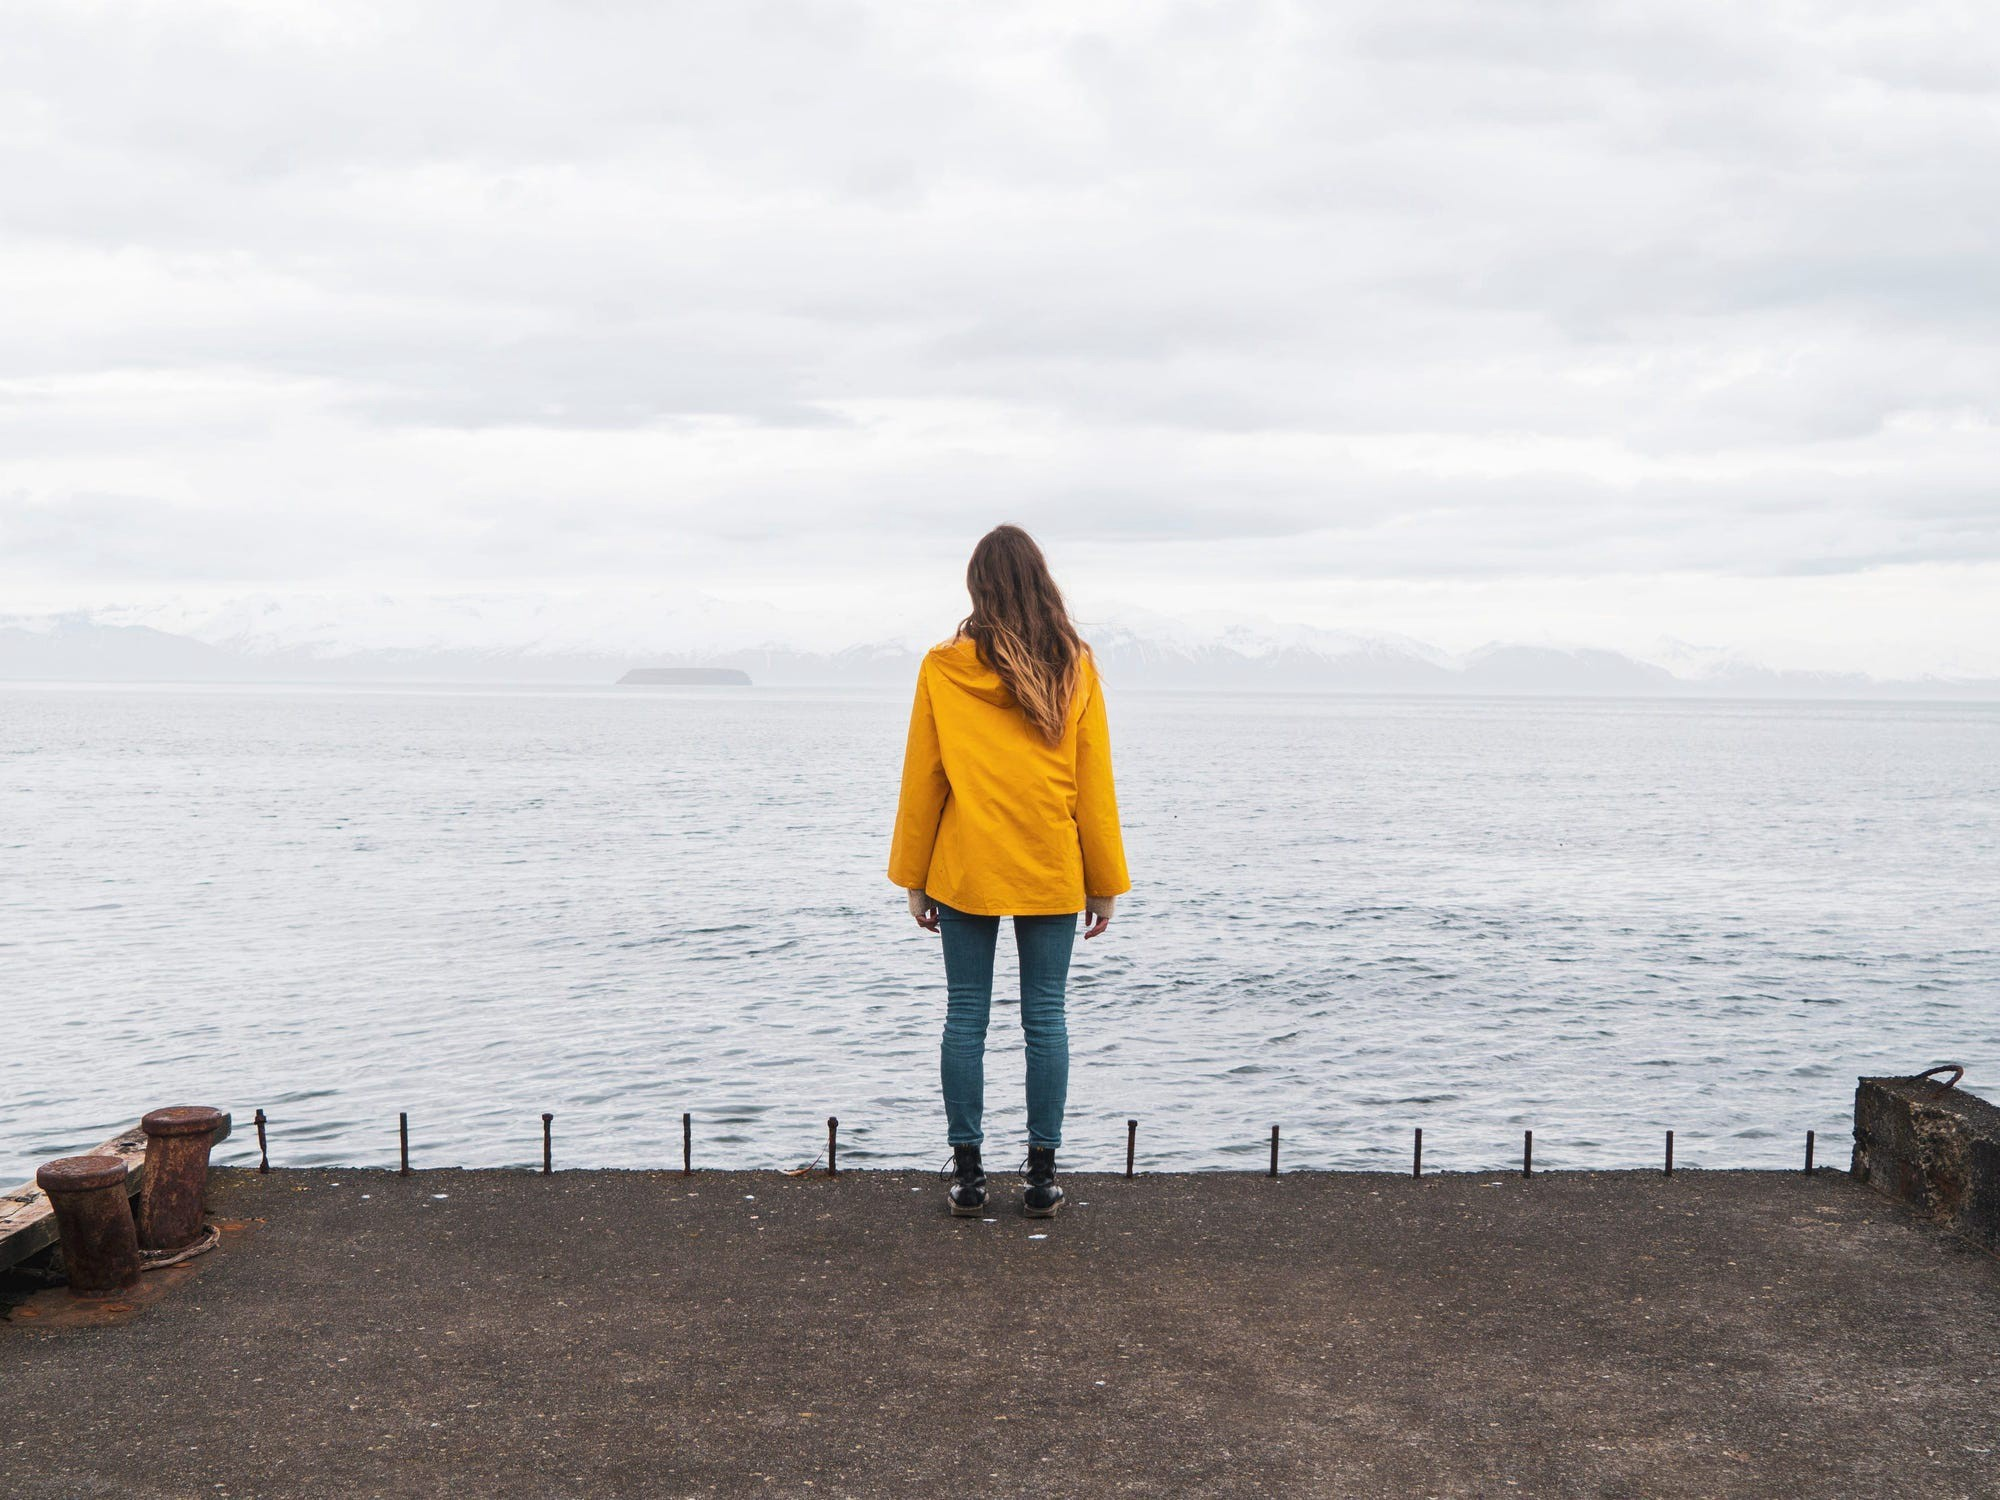 A woman in a yellow coat looking over out into a body of water.